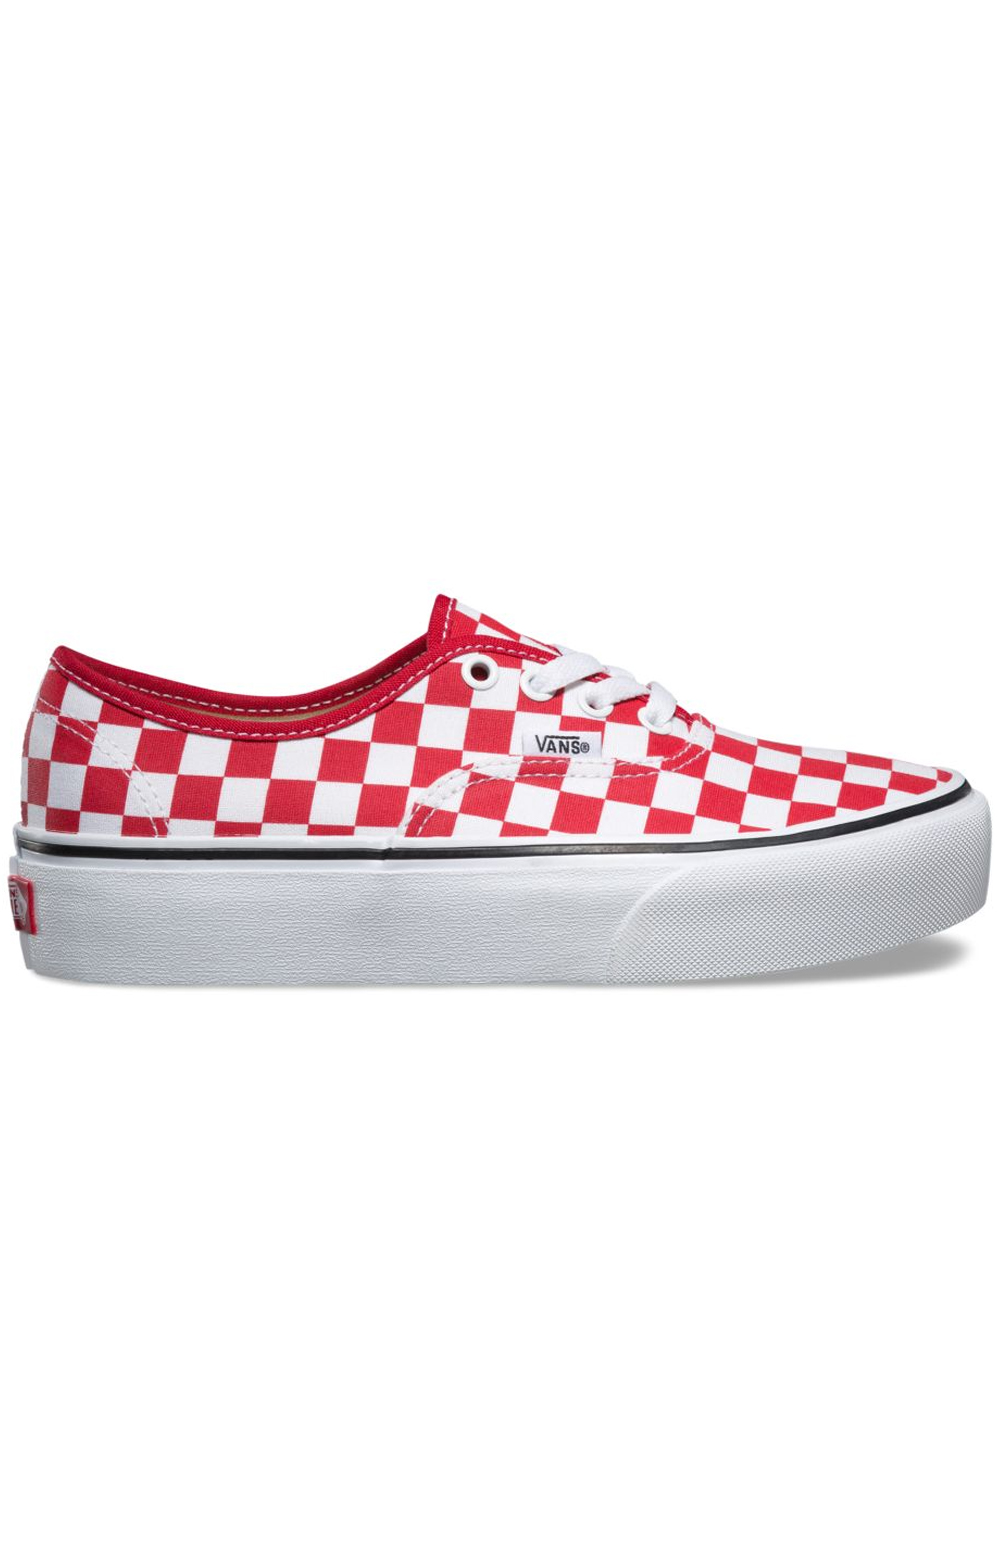 (AV8S4E) Checkerboard Authentic Platform Shoe - Racing Red c6443a9bd